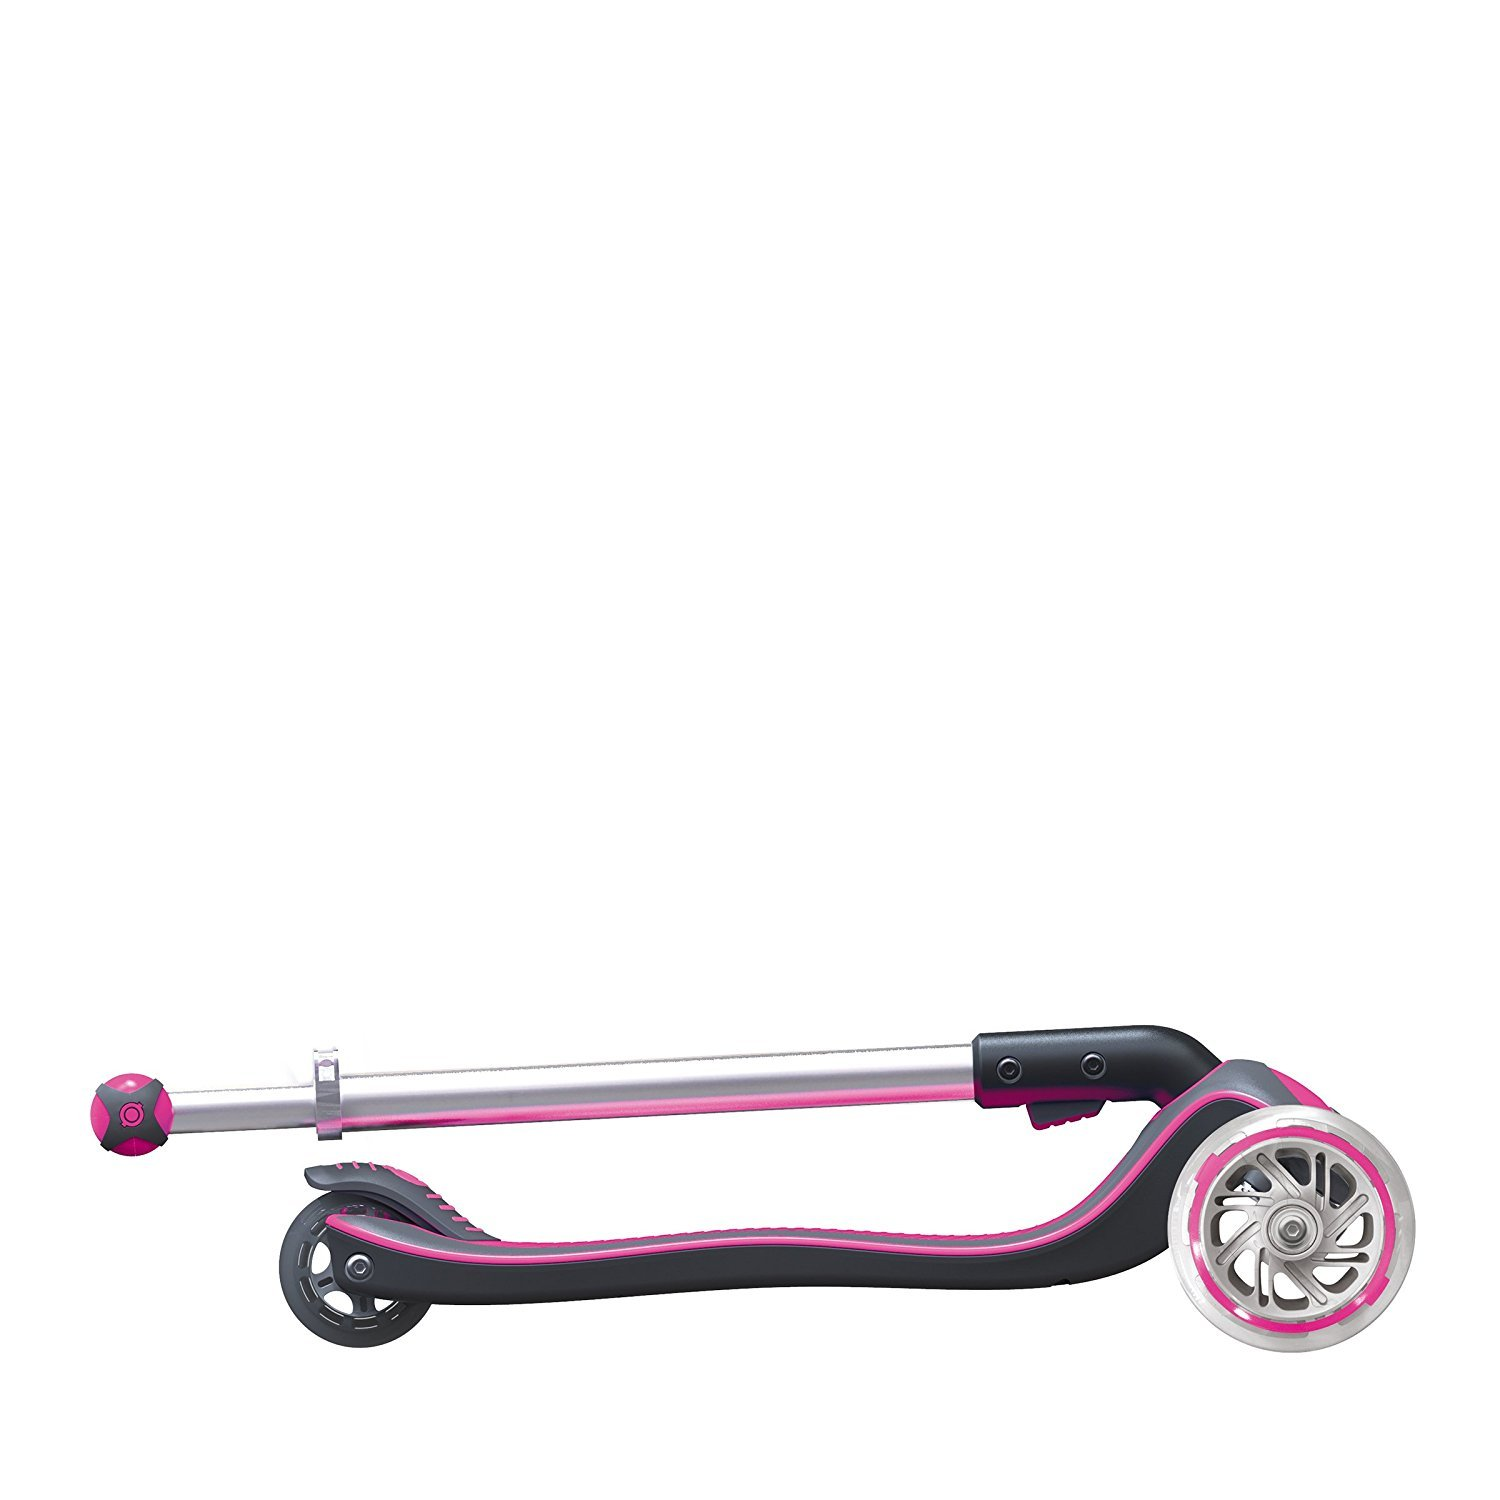 Amazon.com: Globber Elite patinete de 3 ruedas plegable ...